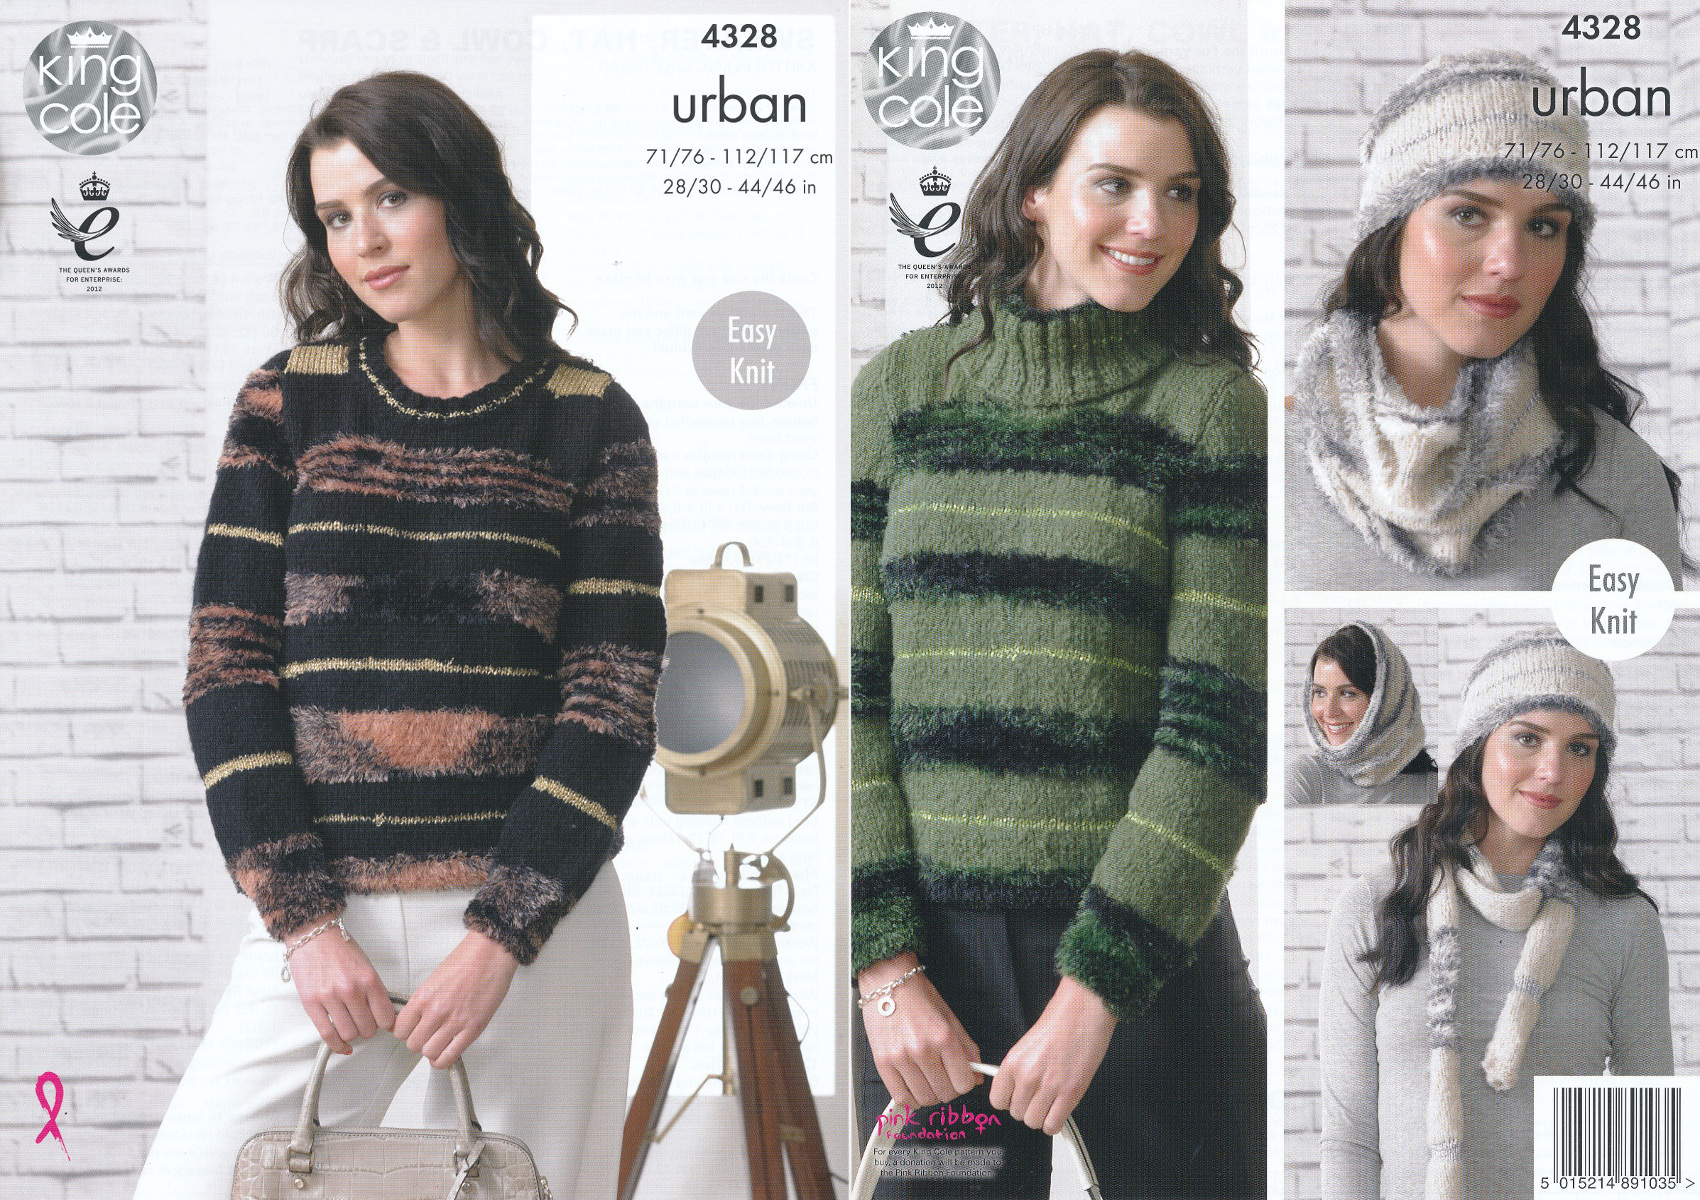 King Cole Knitting Pattern 3318 : King Cole Urban Knitting Pattern Ladies Easy Knit Sweaters Hat Cowl Scarf 432...